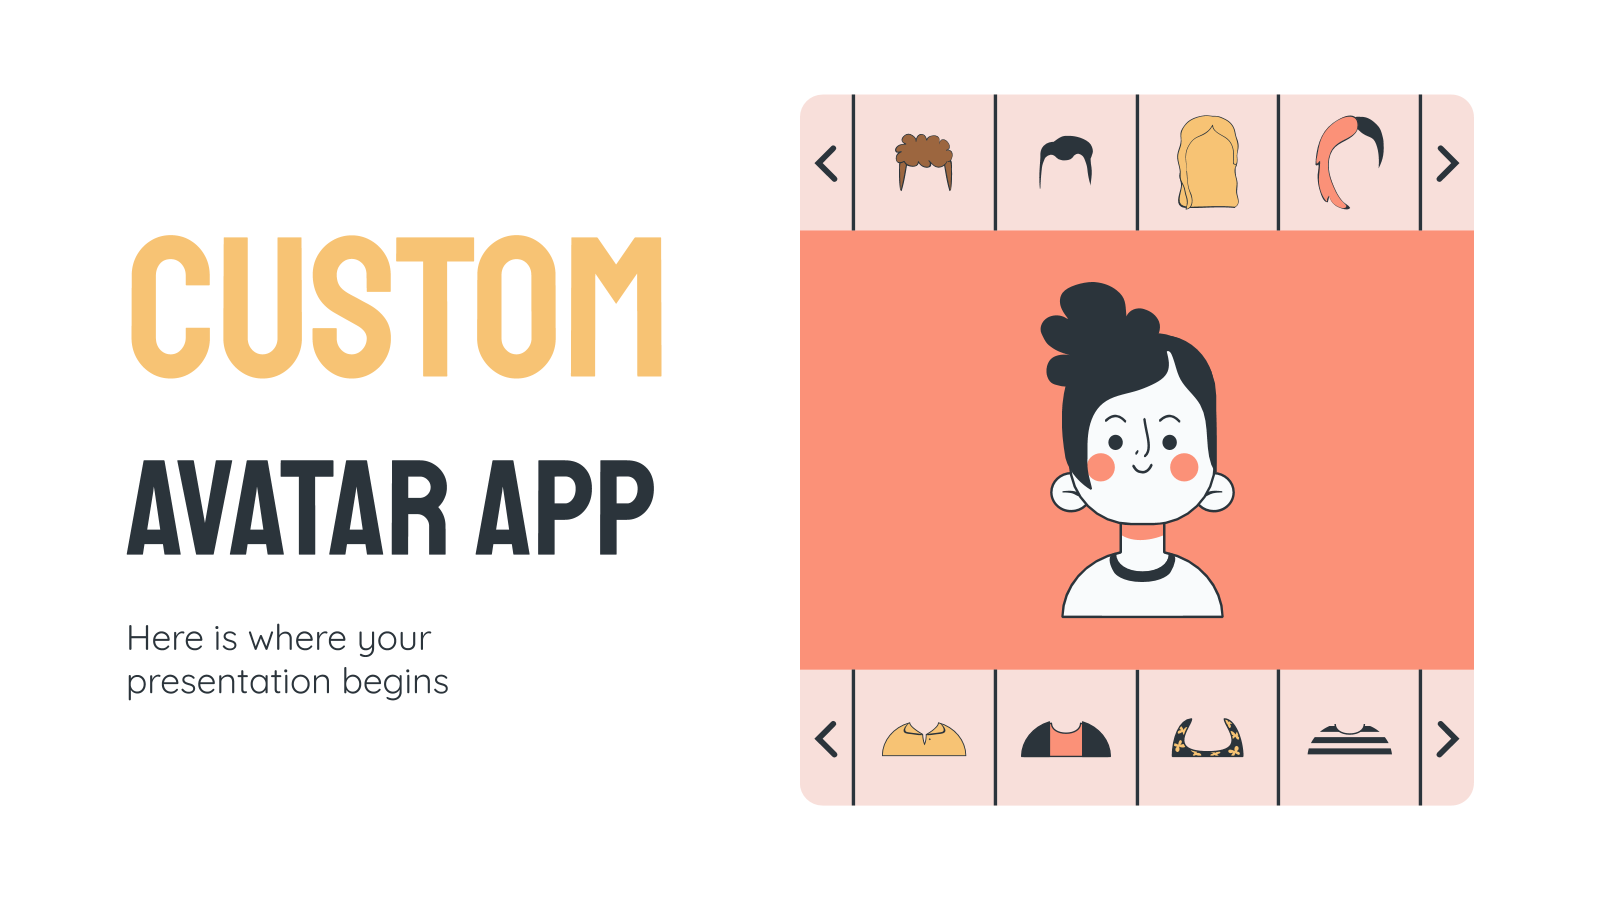 Custom Avatar App presentation template